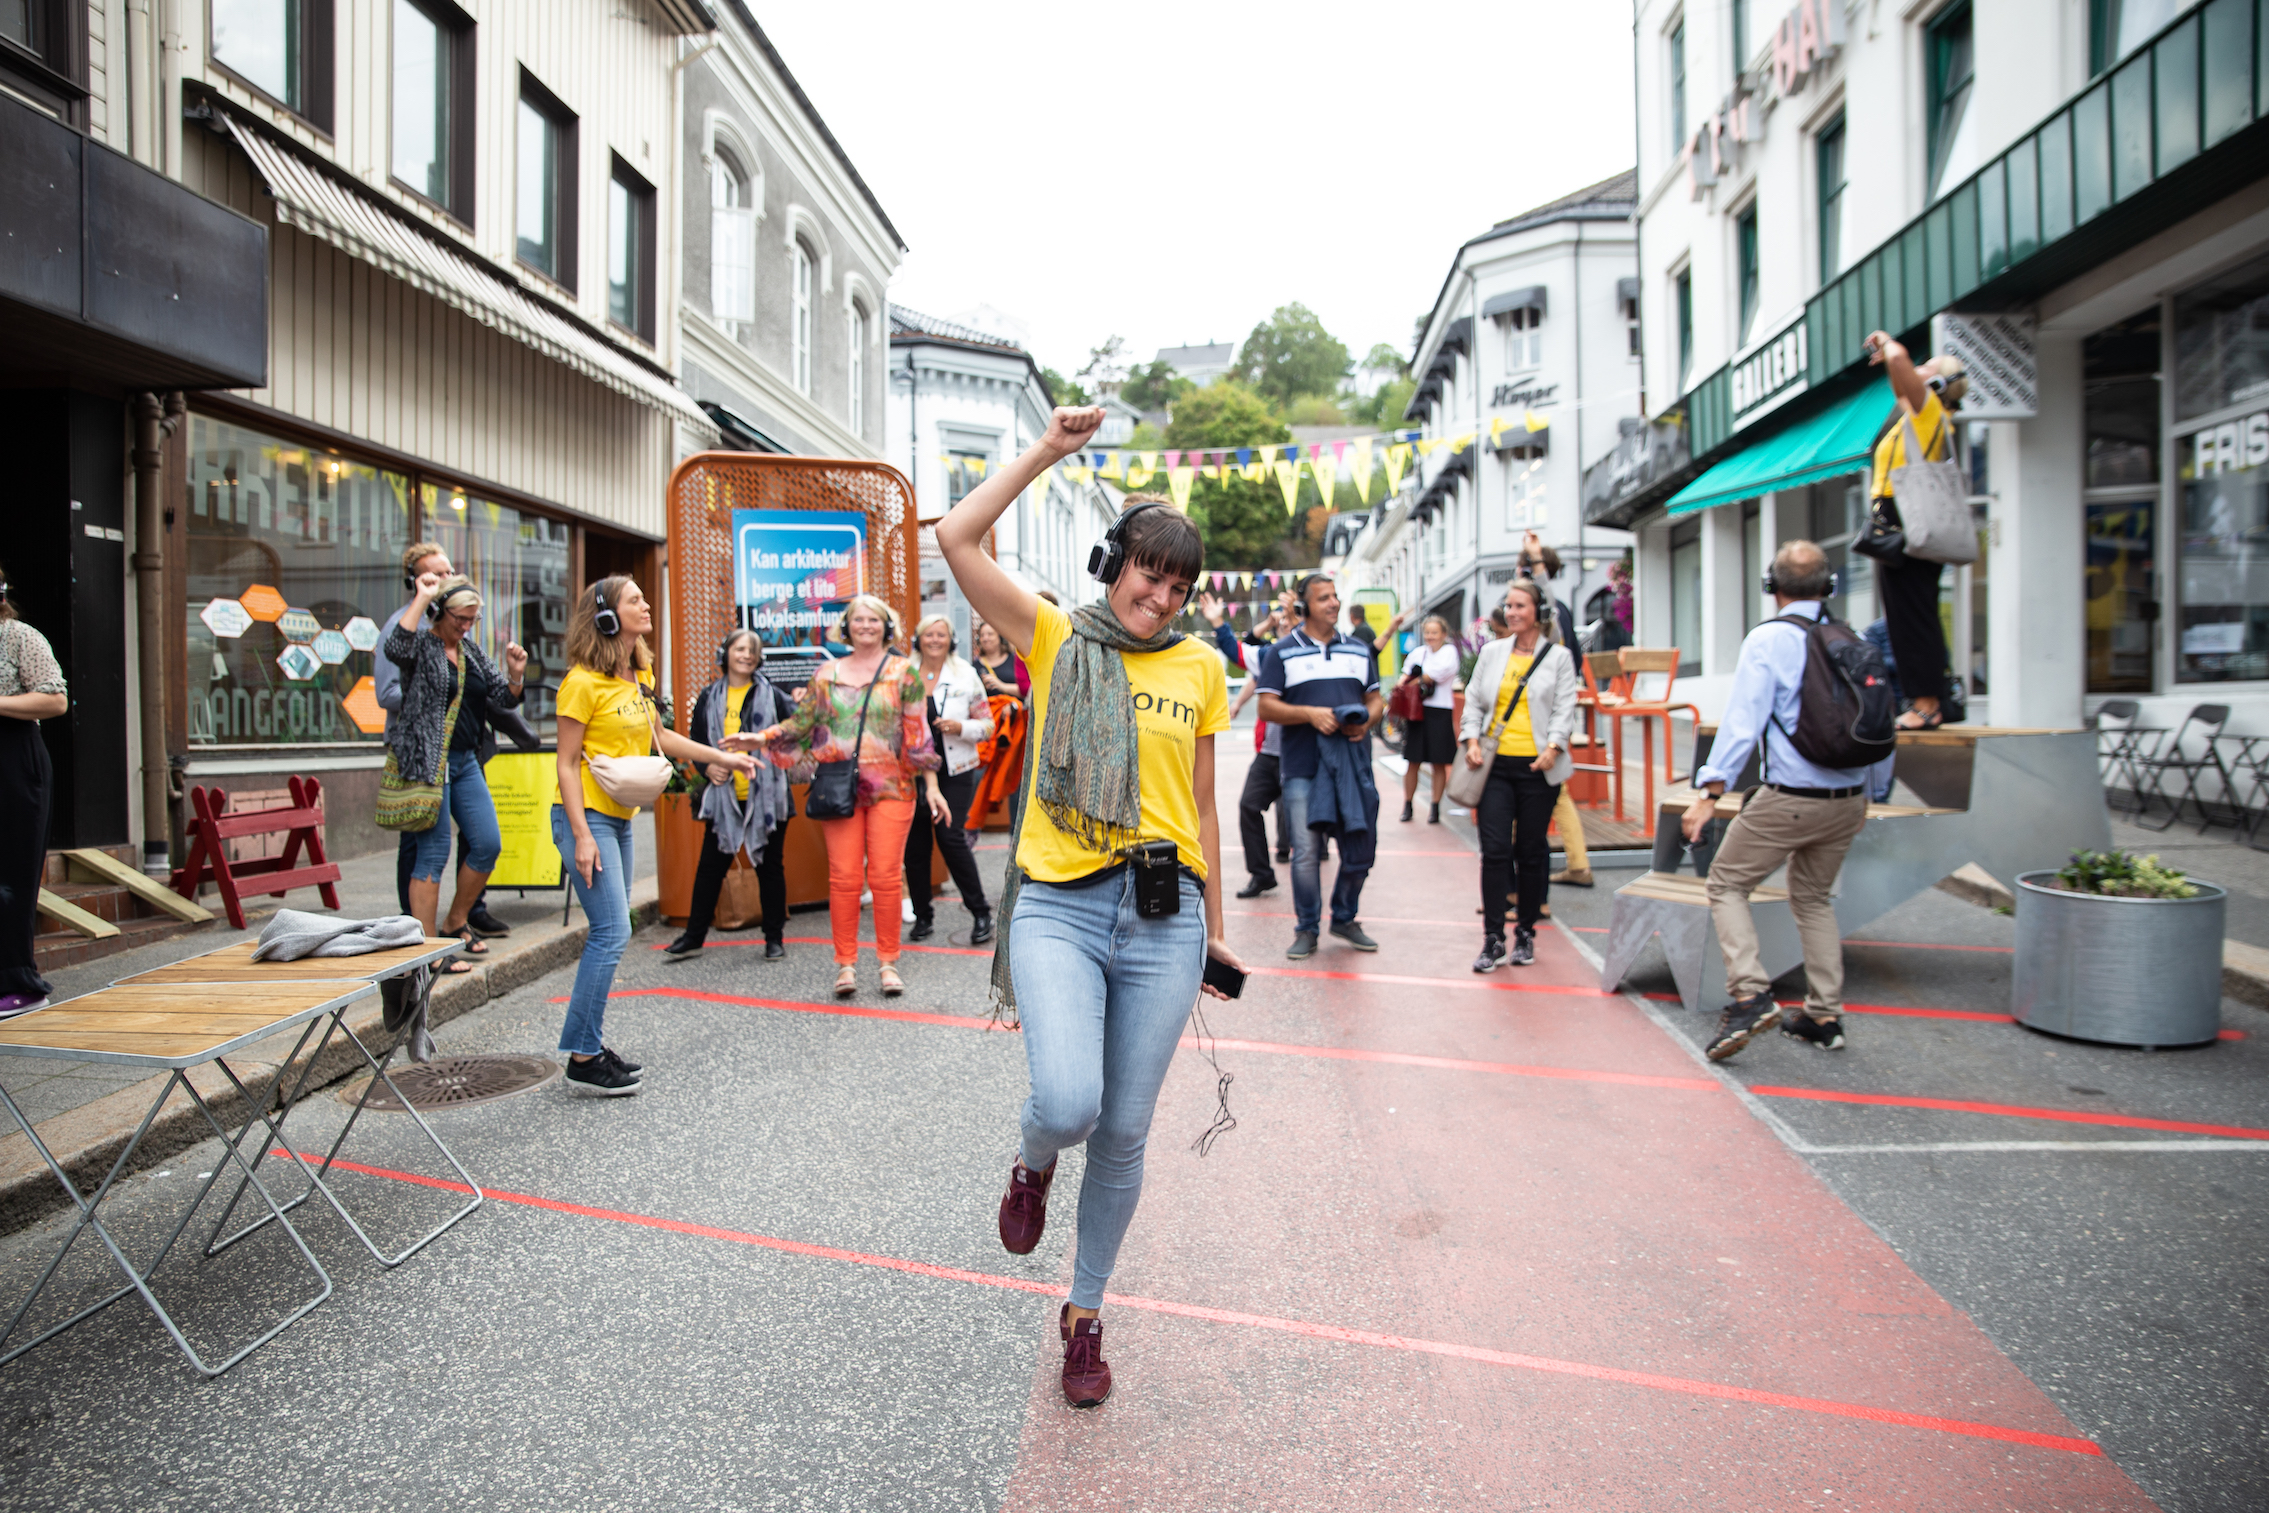 Experiencing a performative audio walk at Arendalsuka, Norway, based on your choice of urban future, part of OAT's events testing ideas and formats, 2018, ahead of the 2019 Triennale. © Arendalsuka/Mona Hauglid.